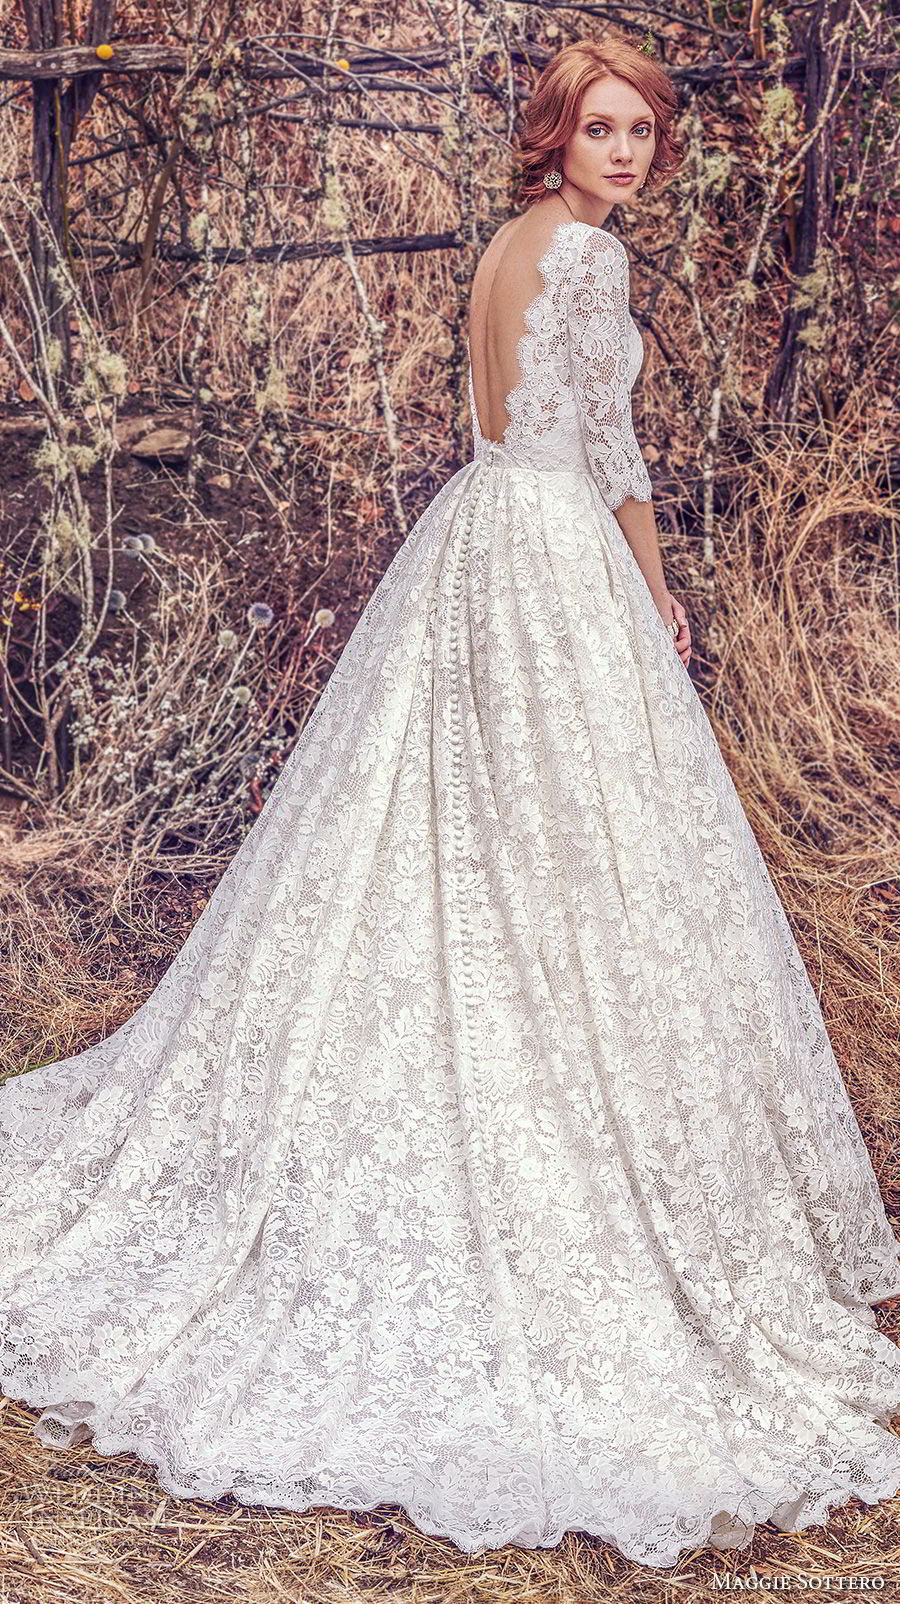 Maggie Sottero Fall 2017 Bridal Half Sleeves Bateau Neck Full Embelllishment Elegant Romantic Ball Gown A